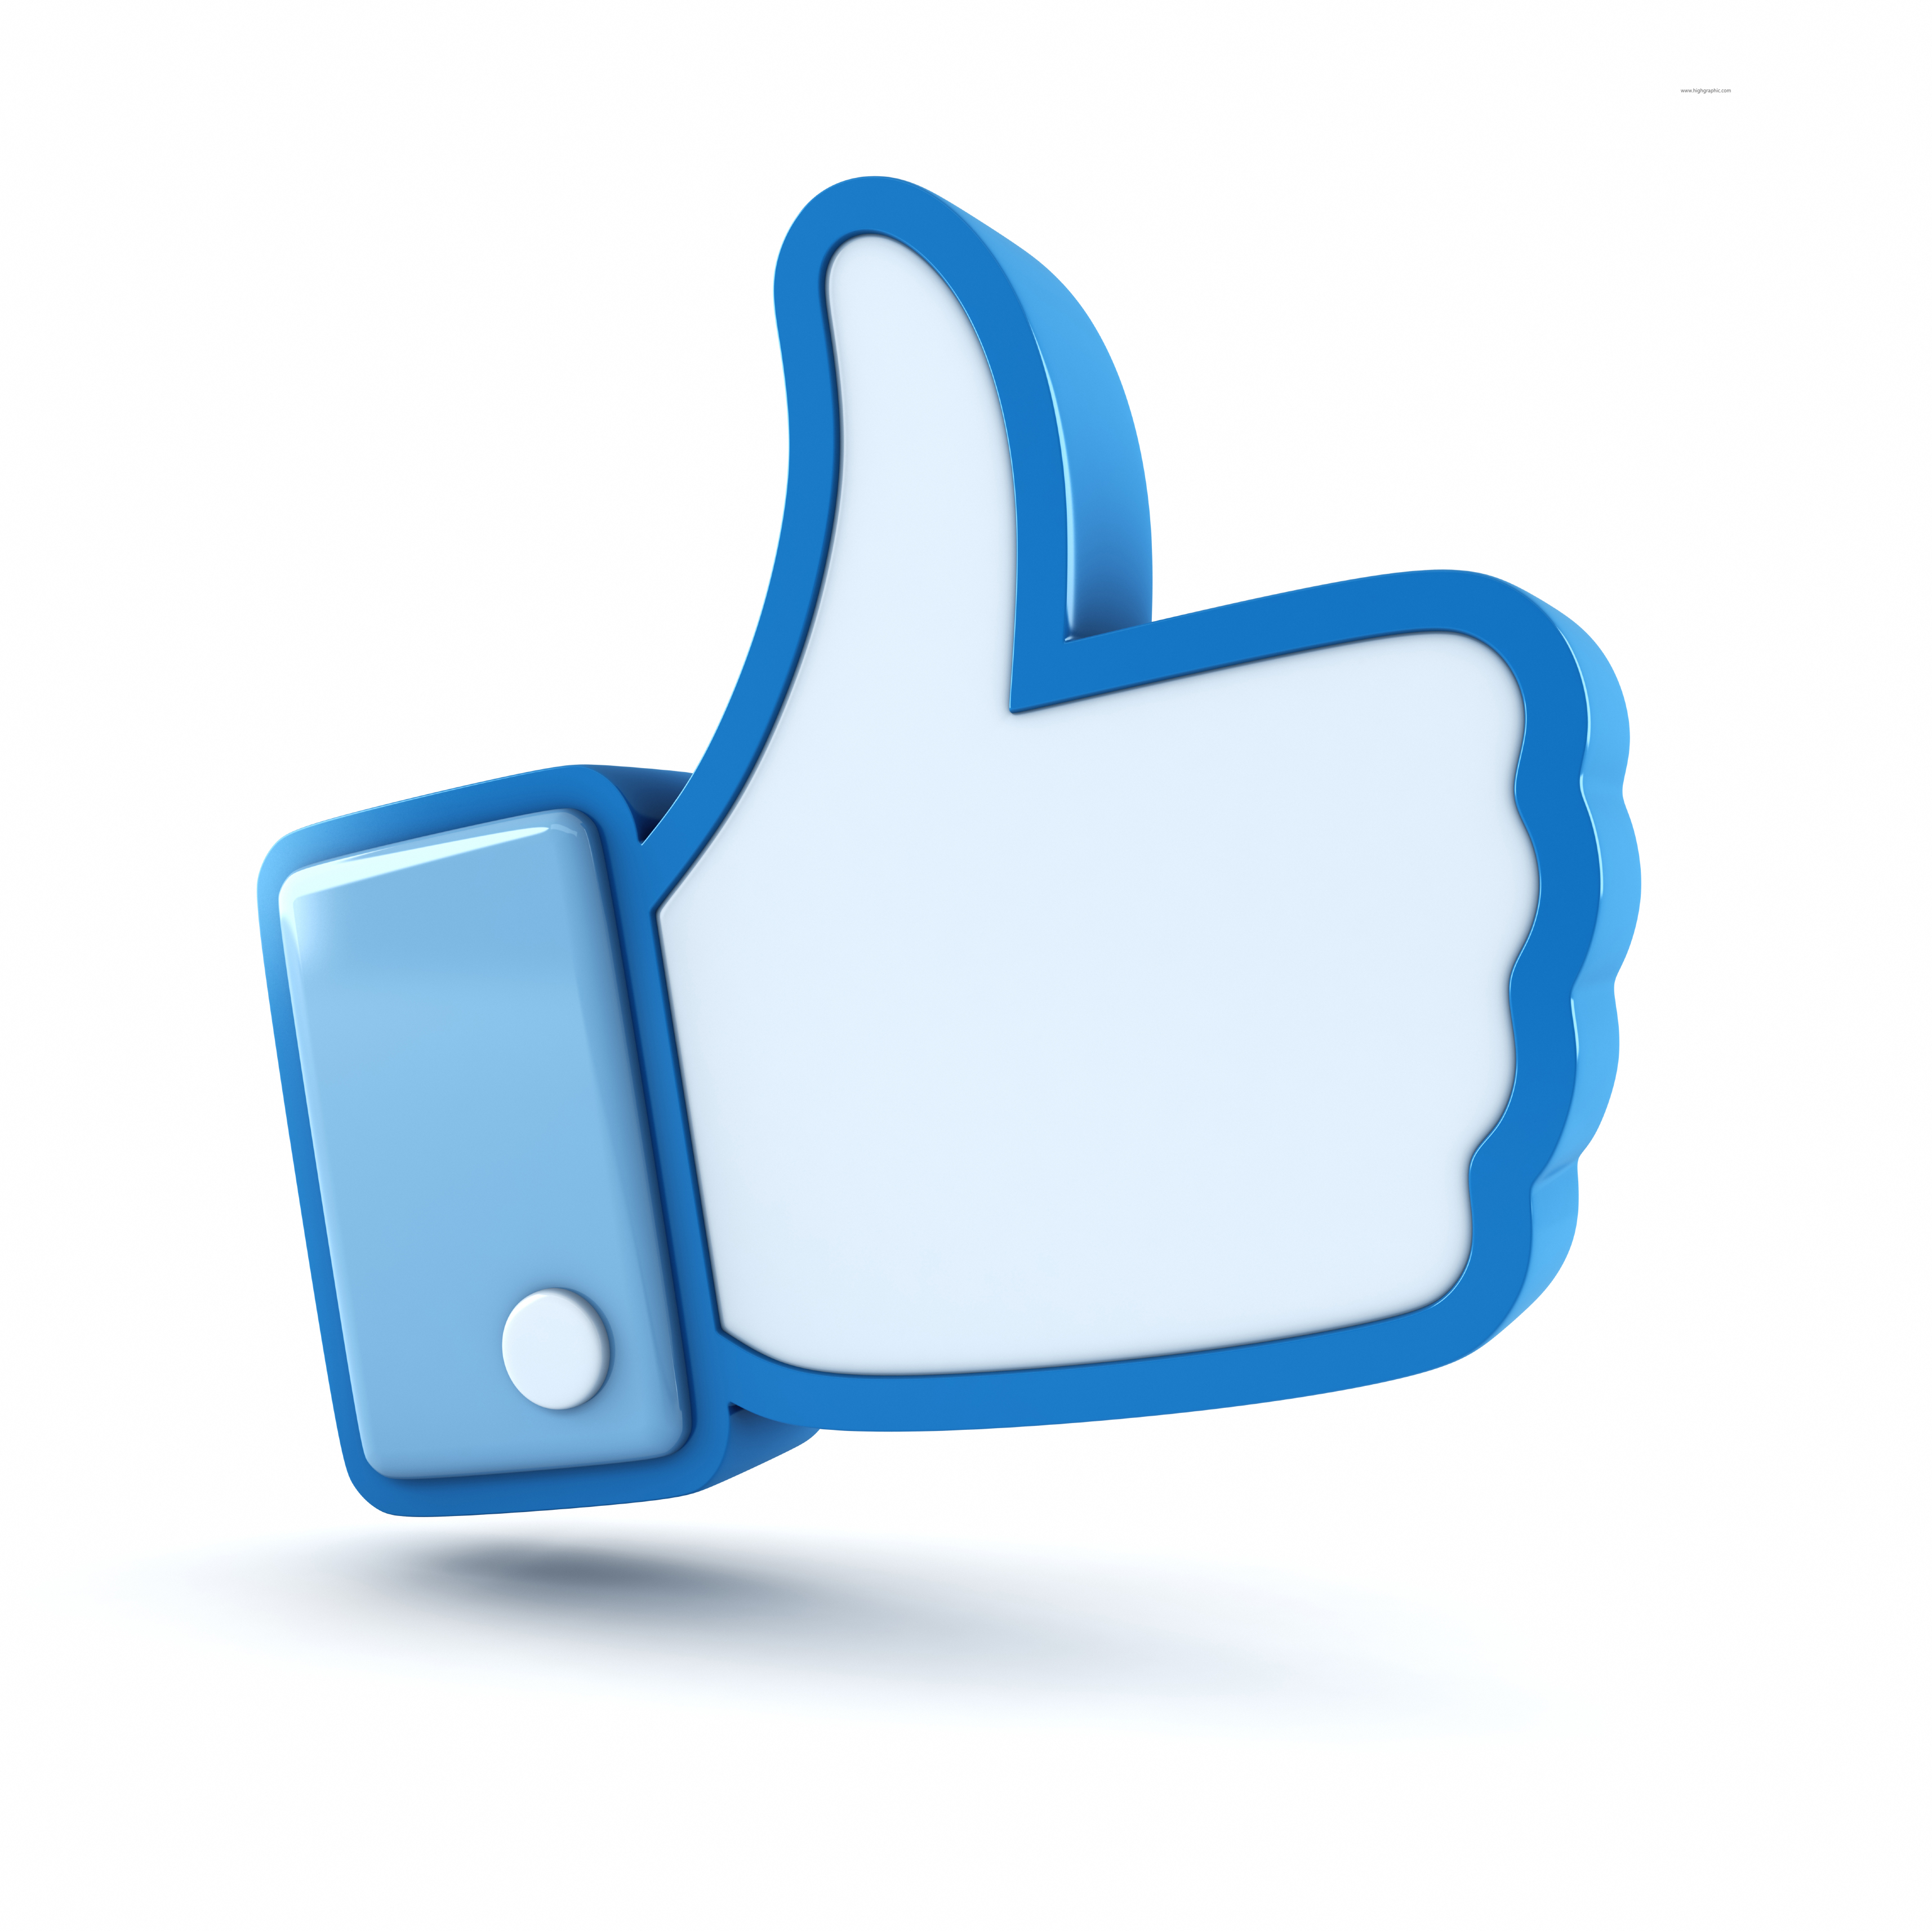 Sign in with facebook button clipart jpg library Facebook Like Clipart | Free download best Facebook Like ... jpg library